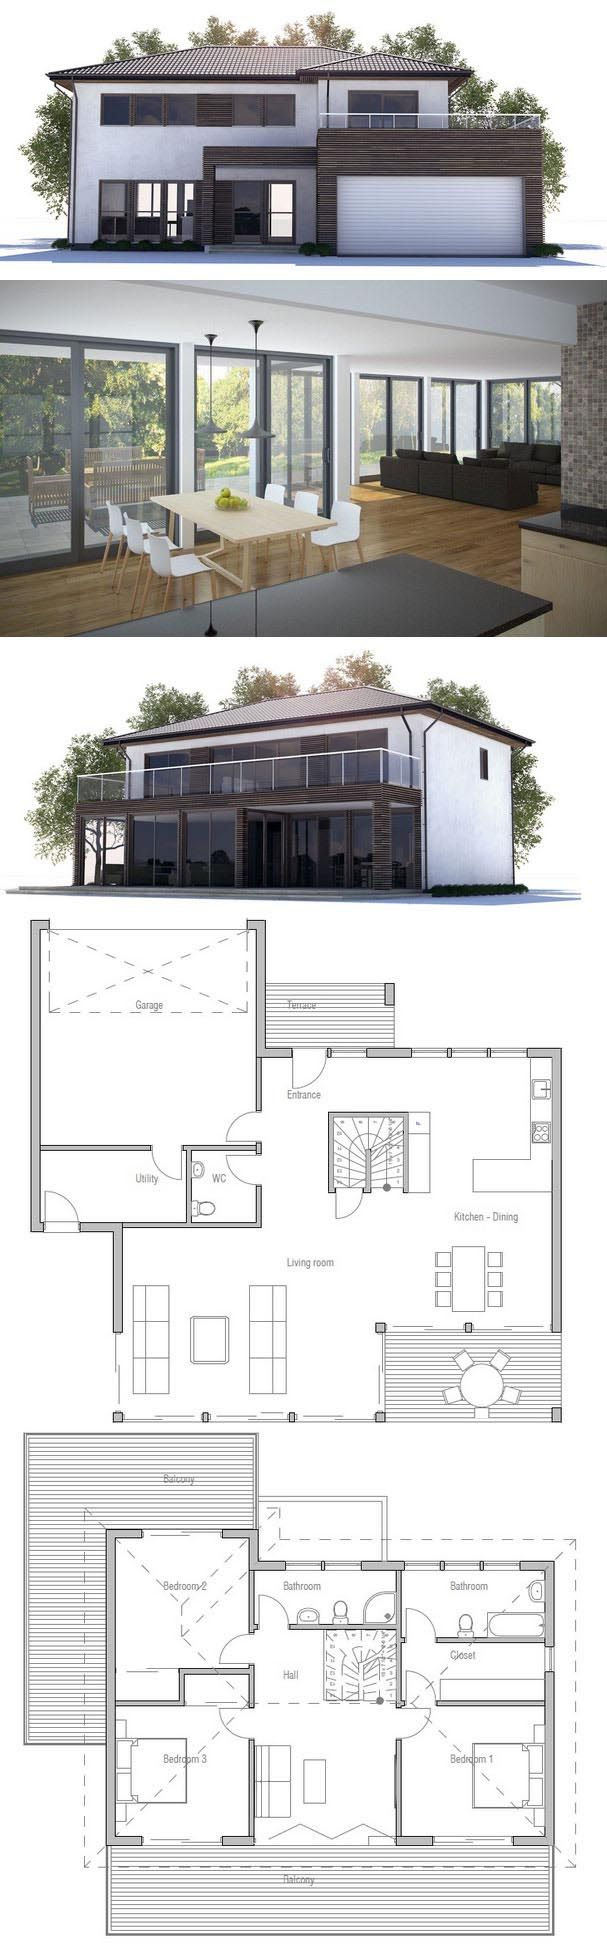 how to add a basement floor plan in revit